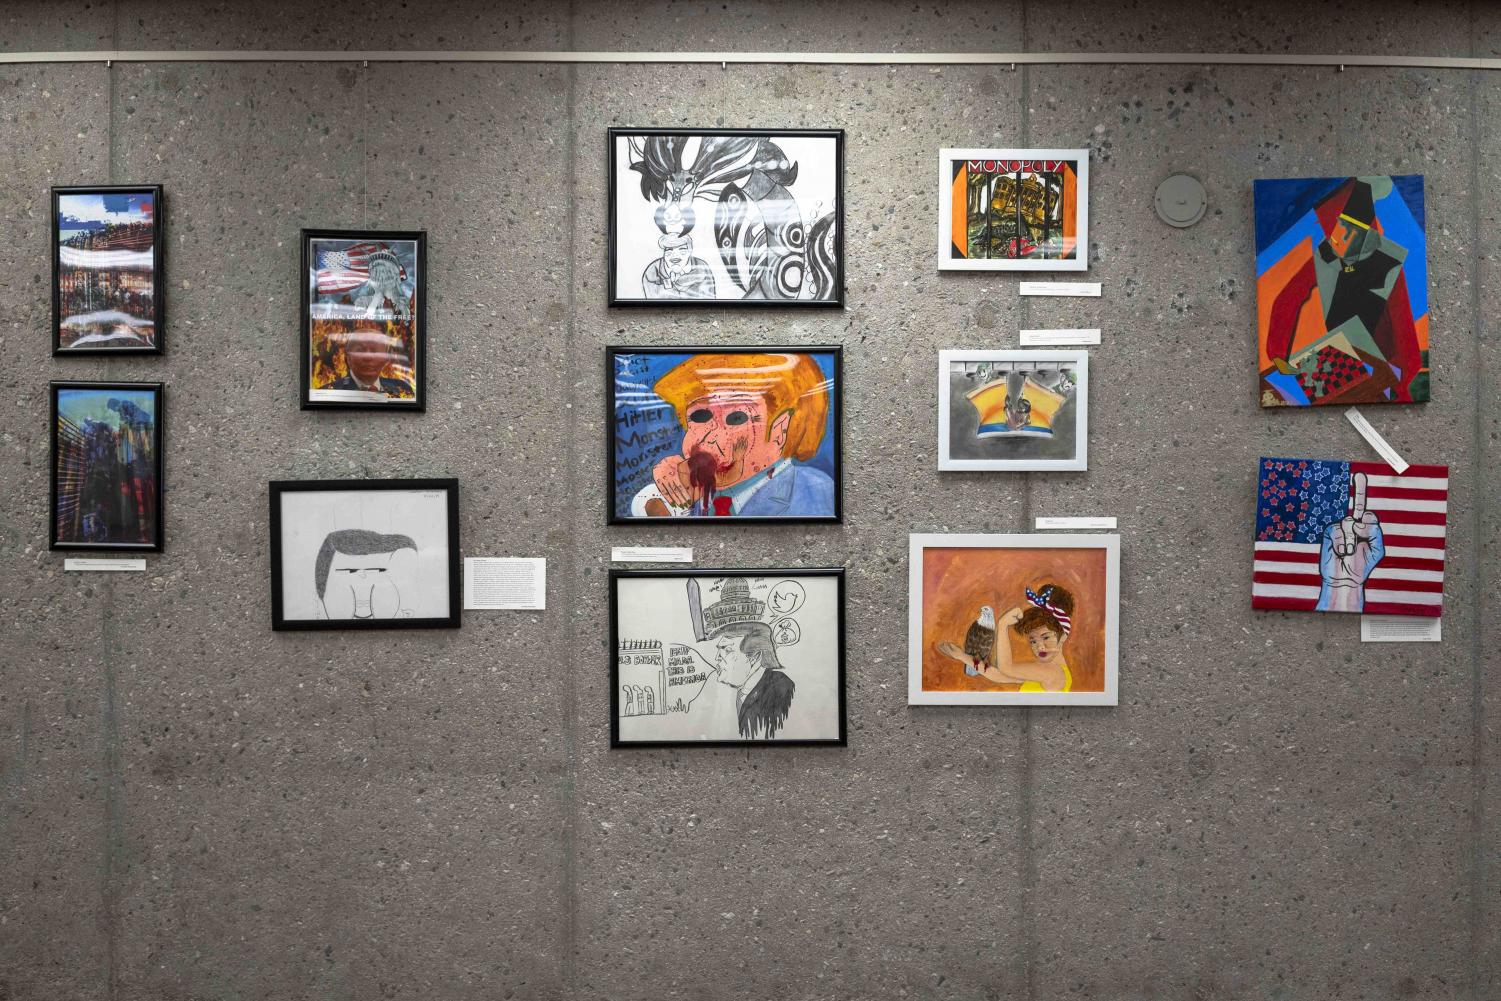 Located between the front desk and Cafe 47 in the library, the Art and Politics Exhibit ranges from race to climate change.